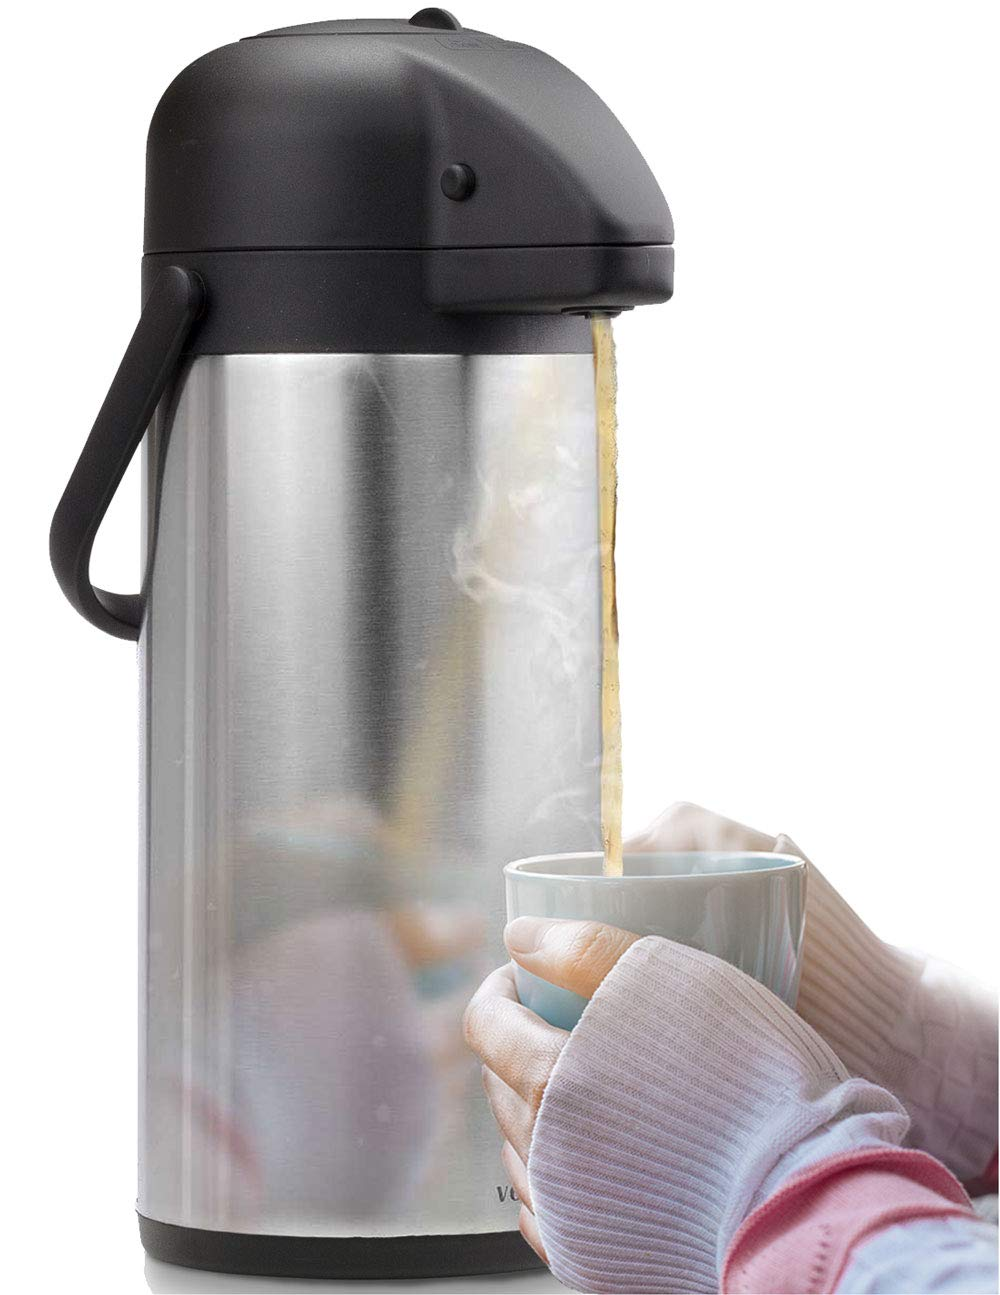 Airpot Coffee Carafe - Thermal Beverage Dispenser (102 oz.) By Vondior. Insulated Stainless Steel Coffee Thermos Urn For Hot/Cold Water, Pump Action Airpot, Party Chocolate Drink